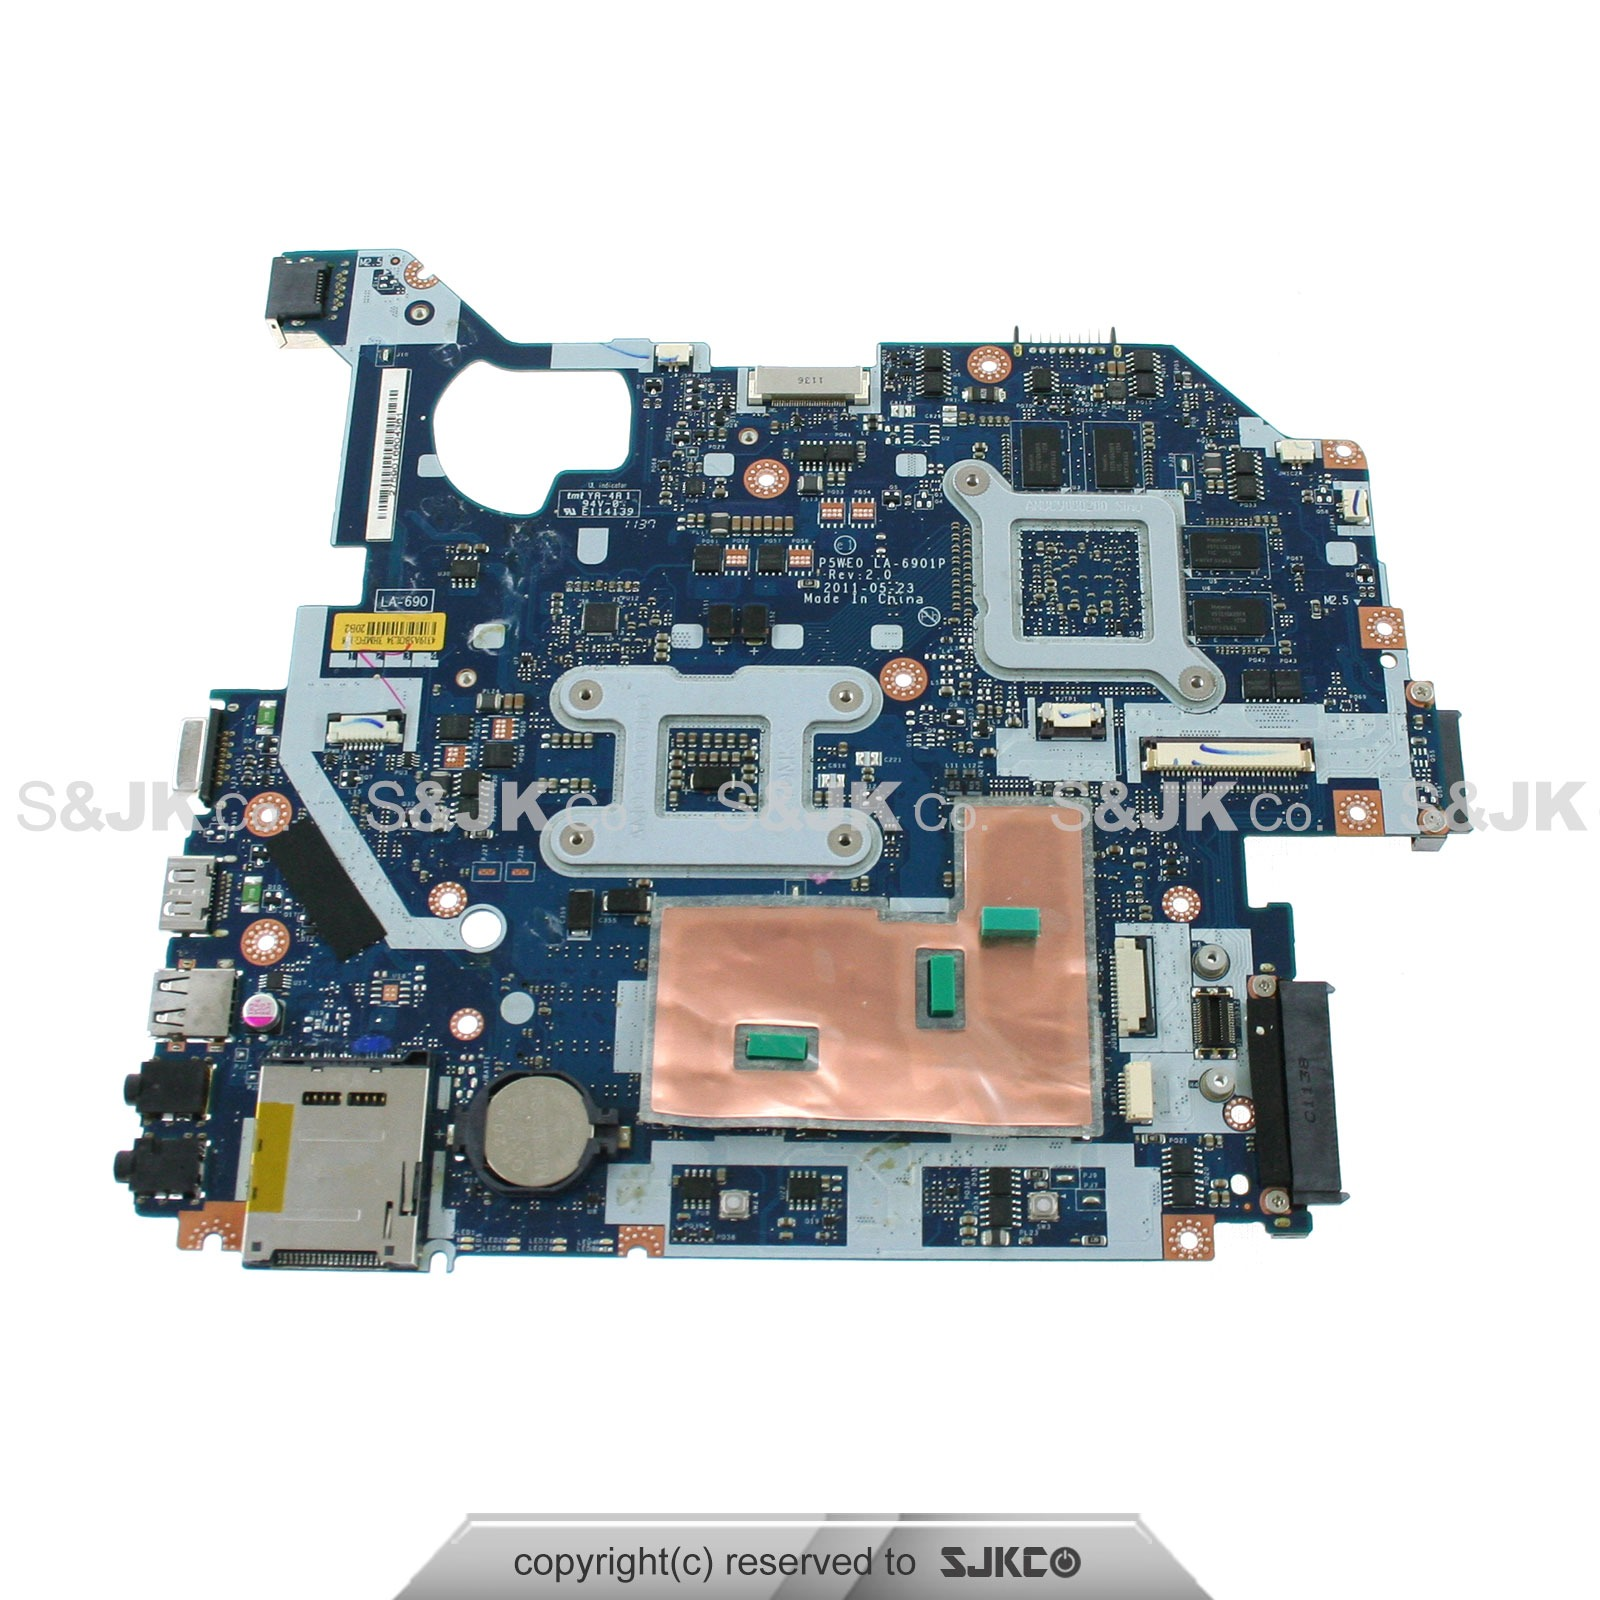 New Acer Aspire 5750g Intel Motherboard System Board Mb